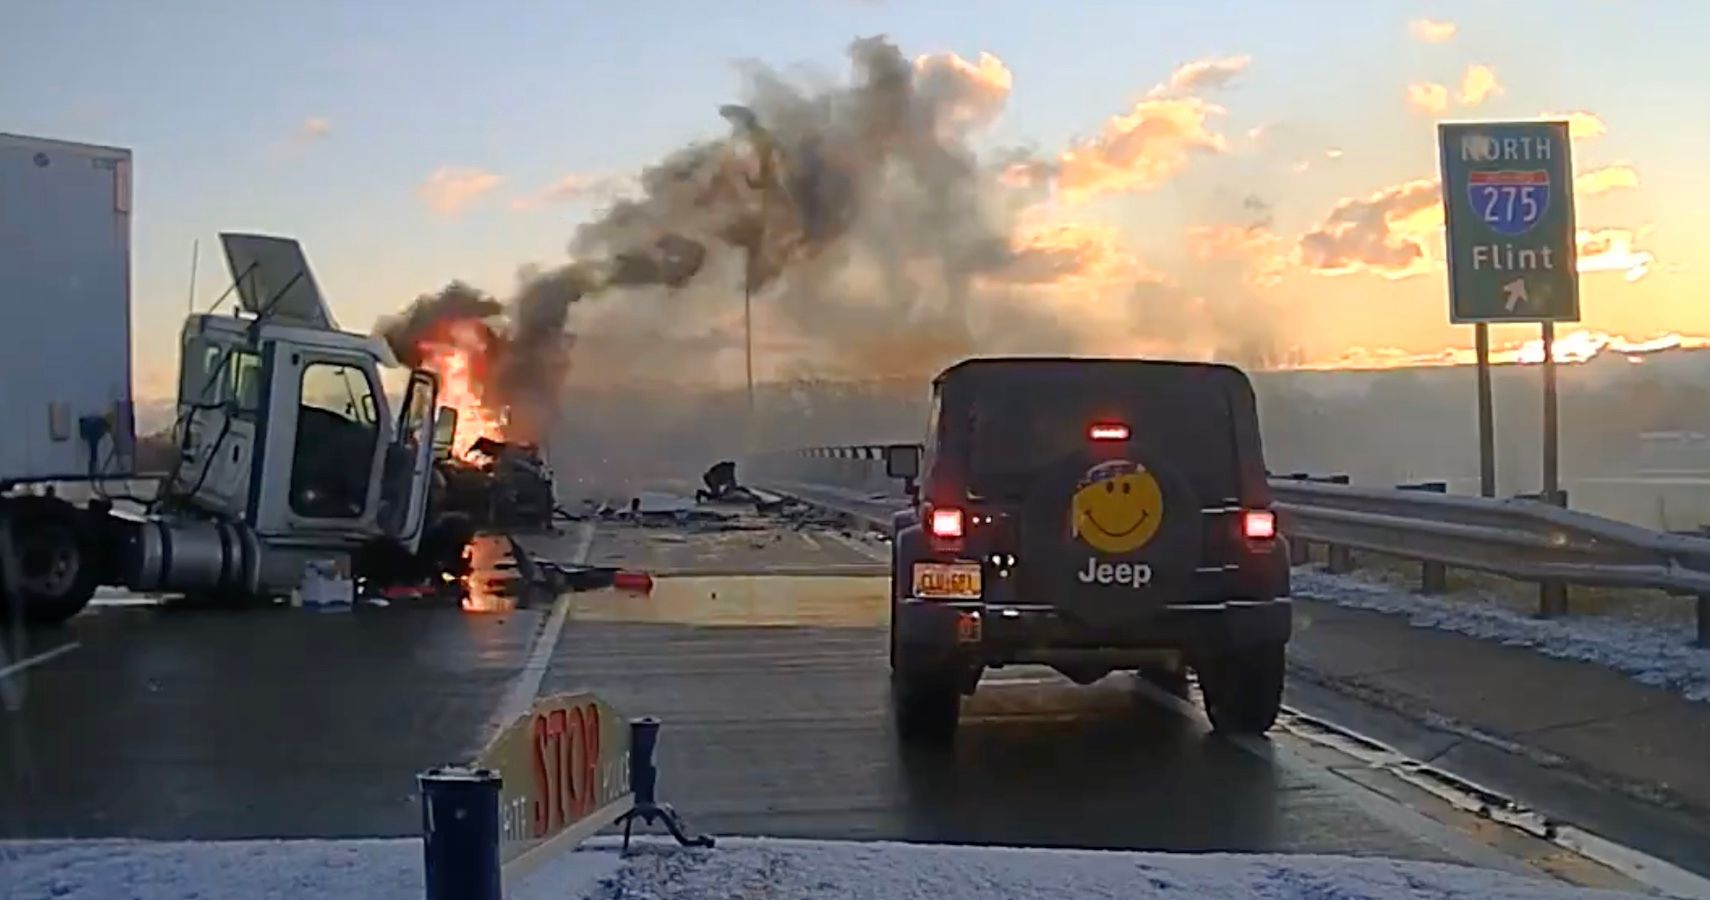 Watch A Michigan State Police Trooper Rescue Man After Fiery Semi-Truck Accident